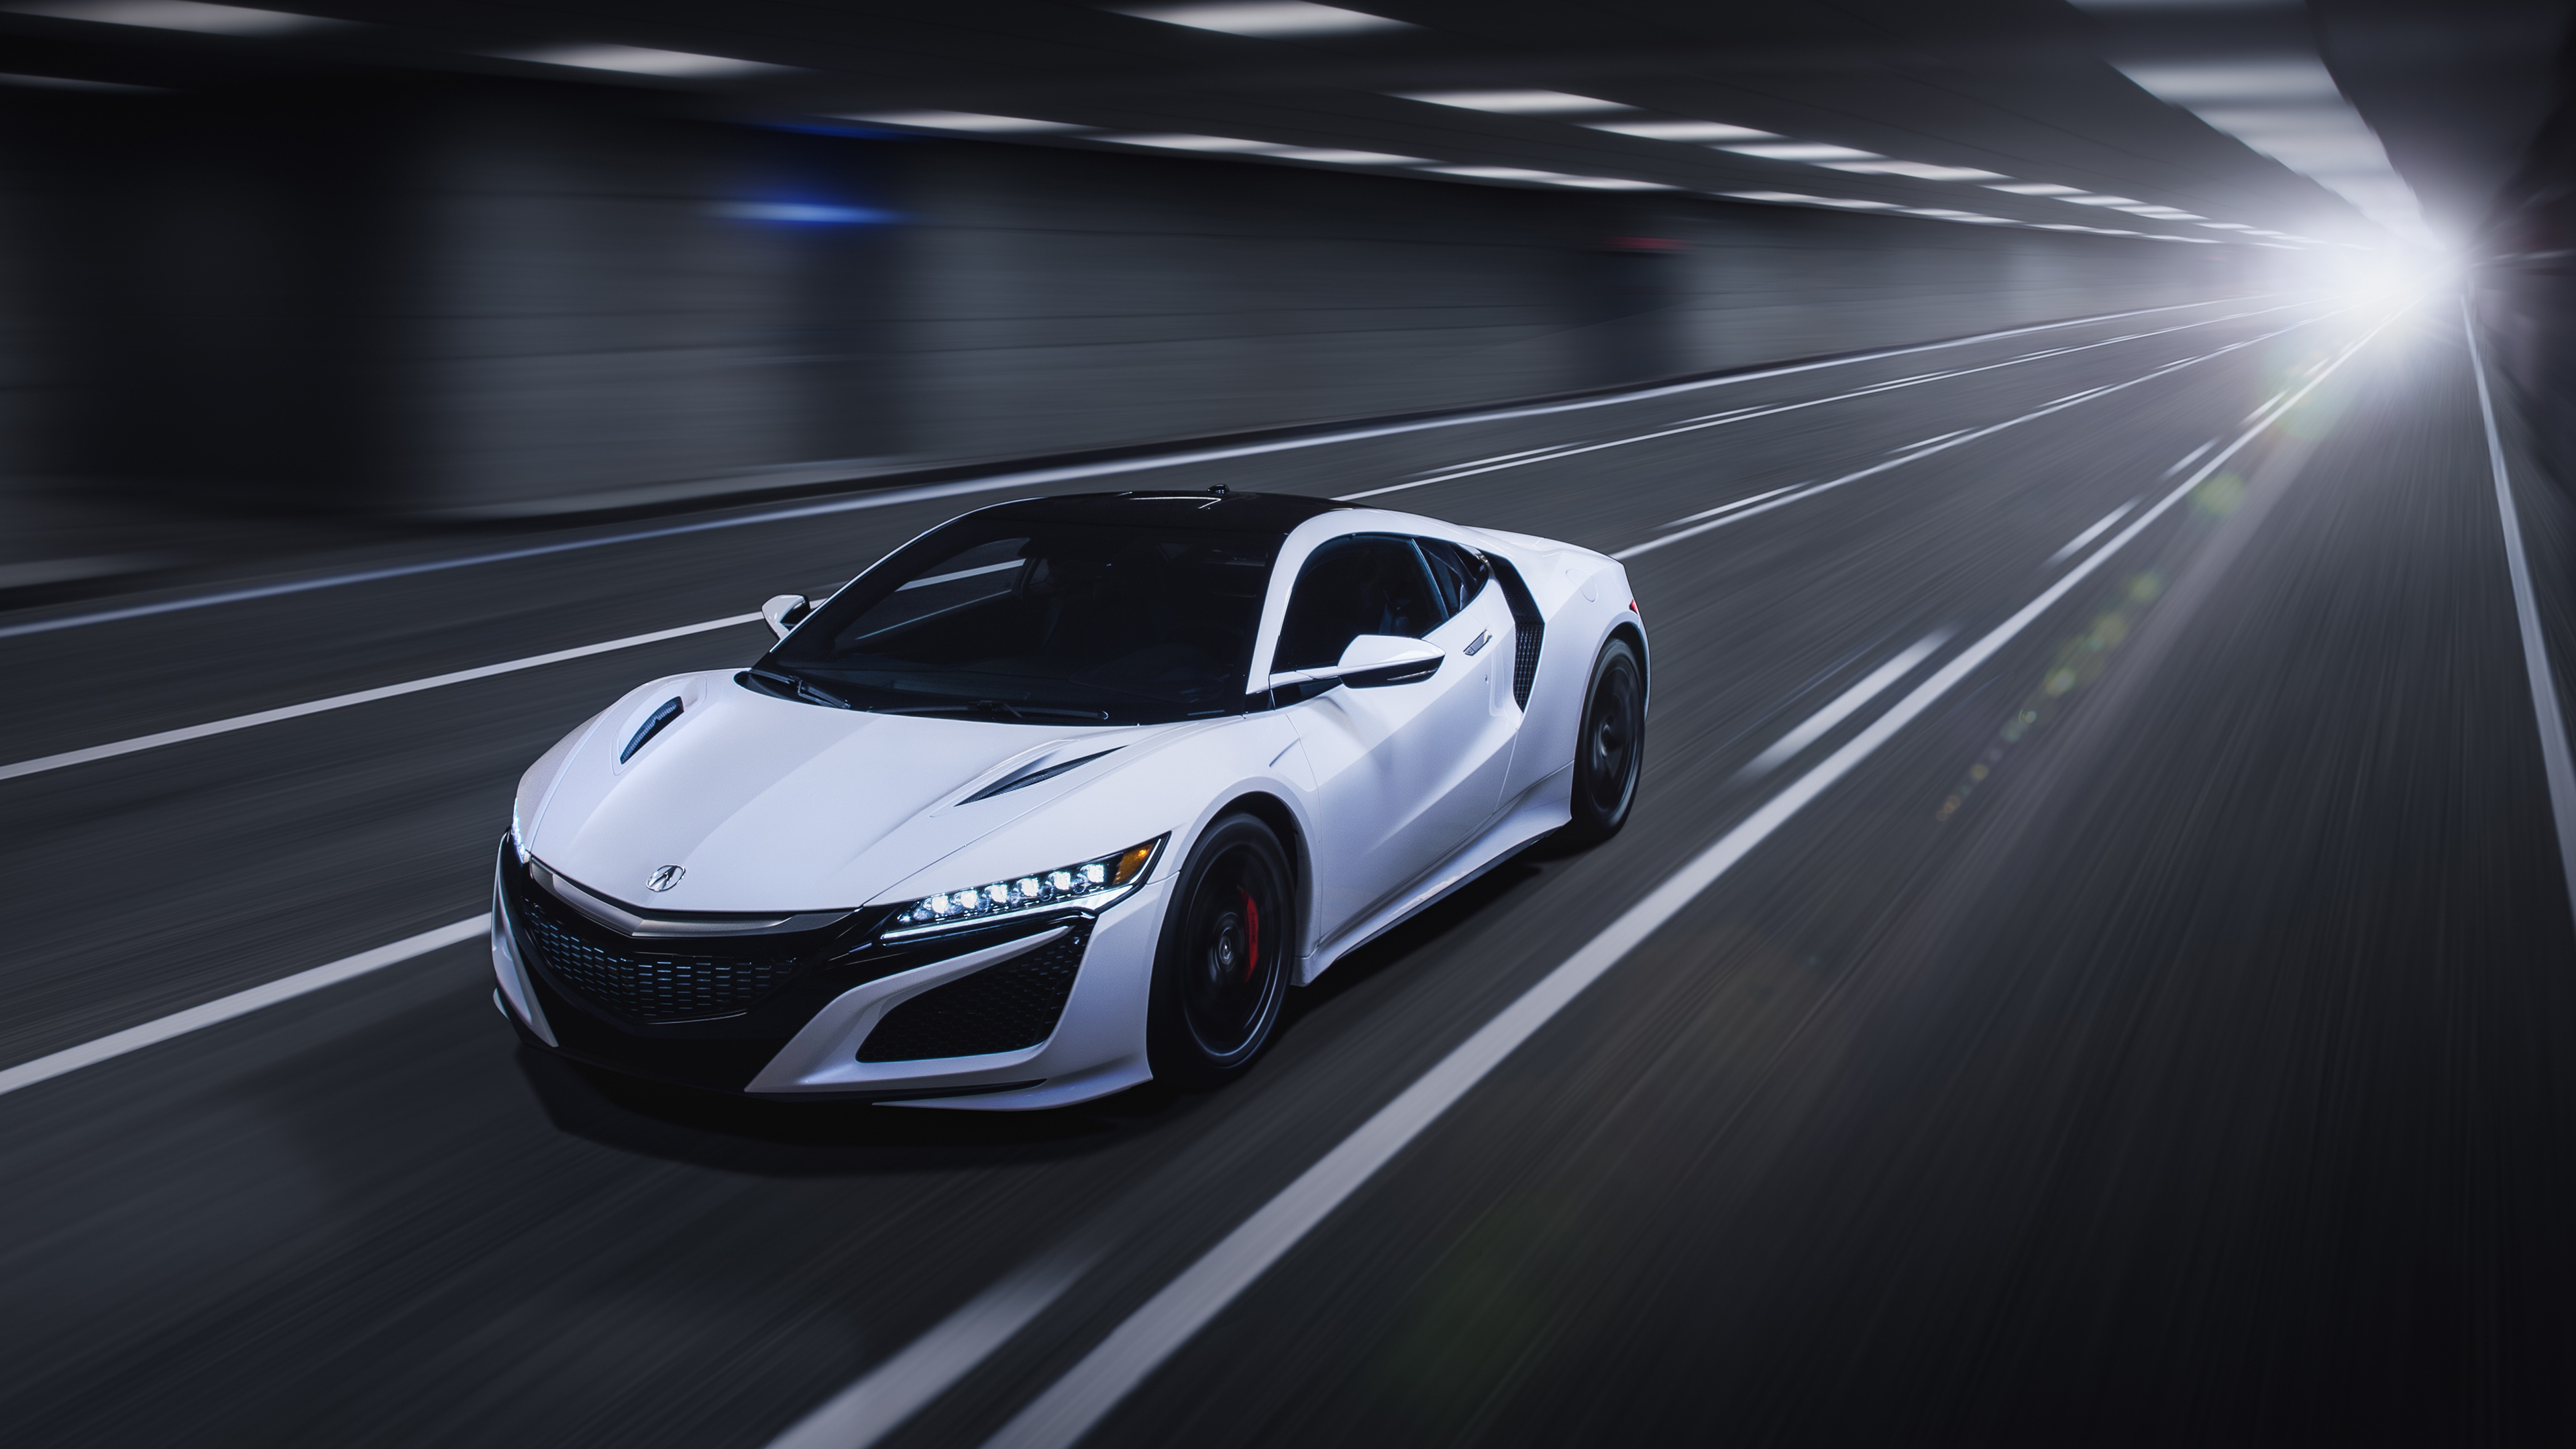 Acura NSX 4k Ultra HD Wallpaper | Background Image